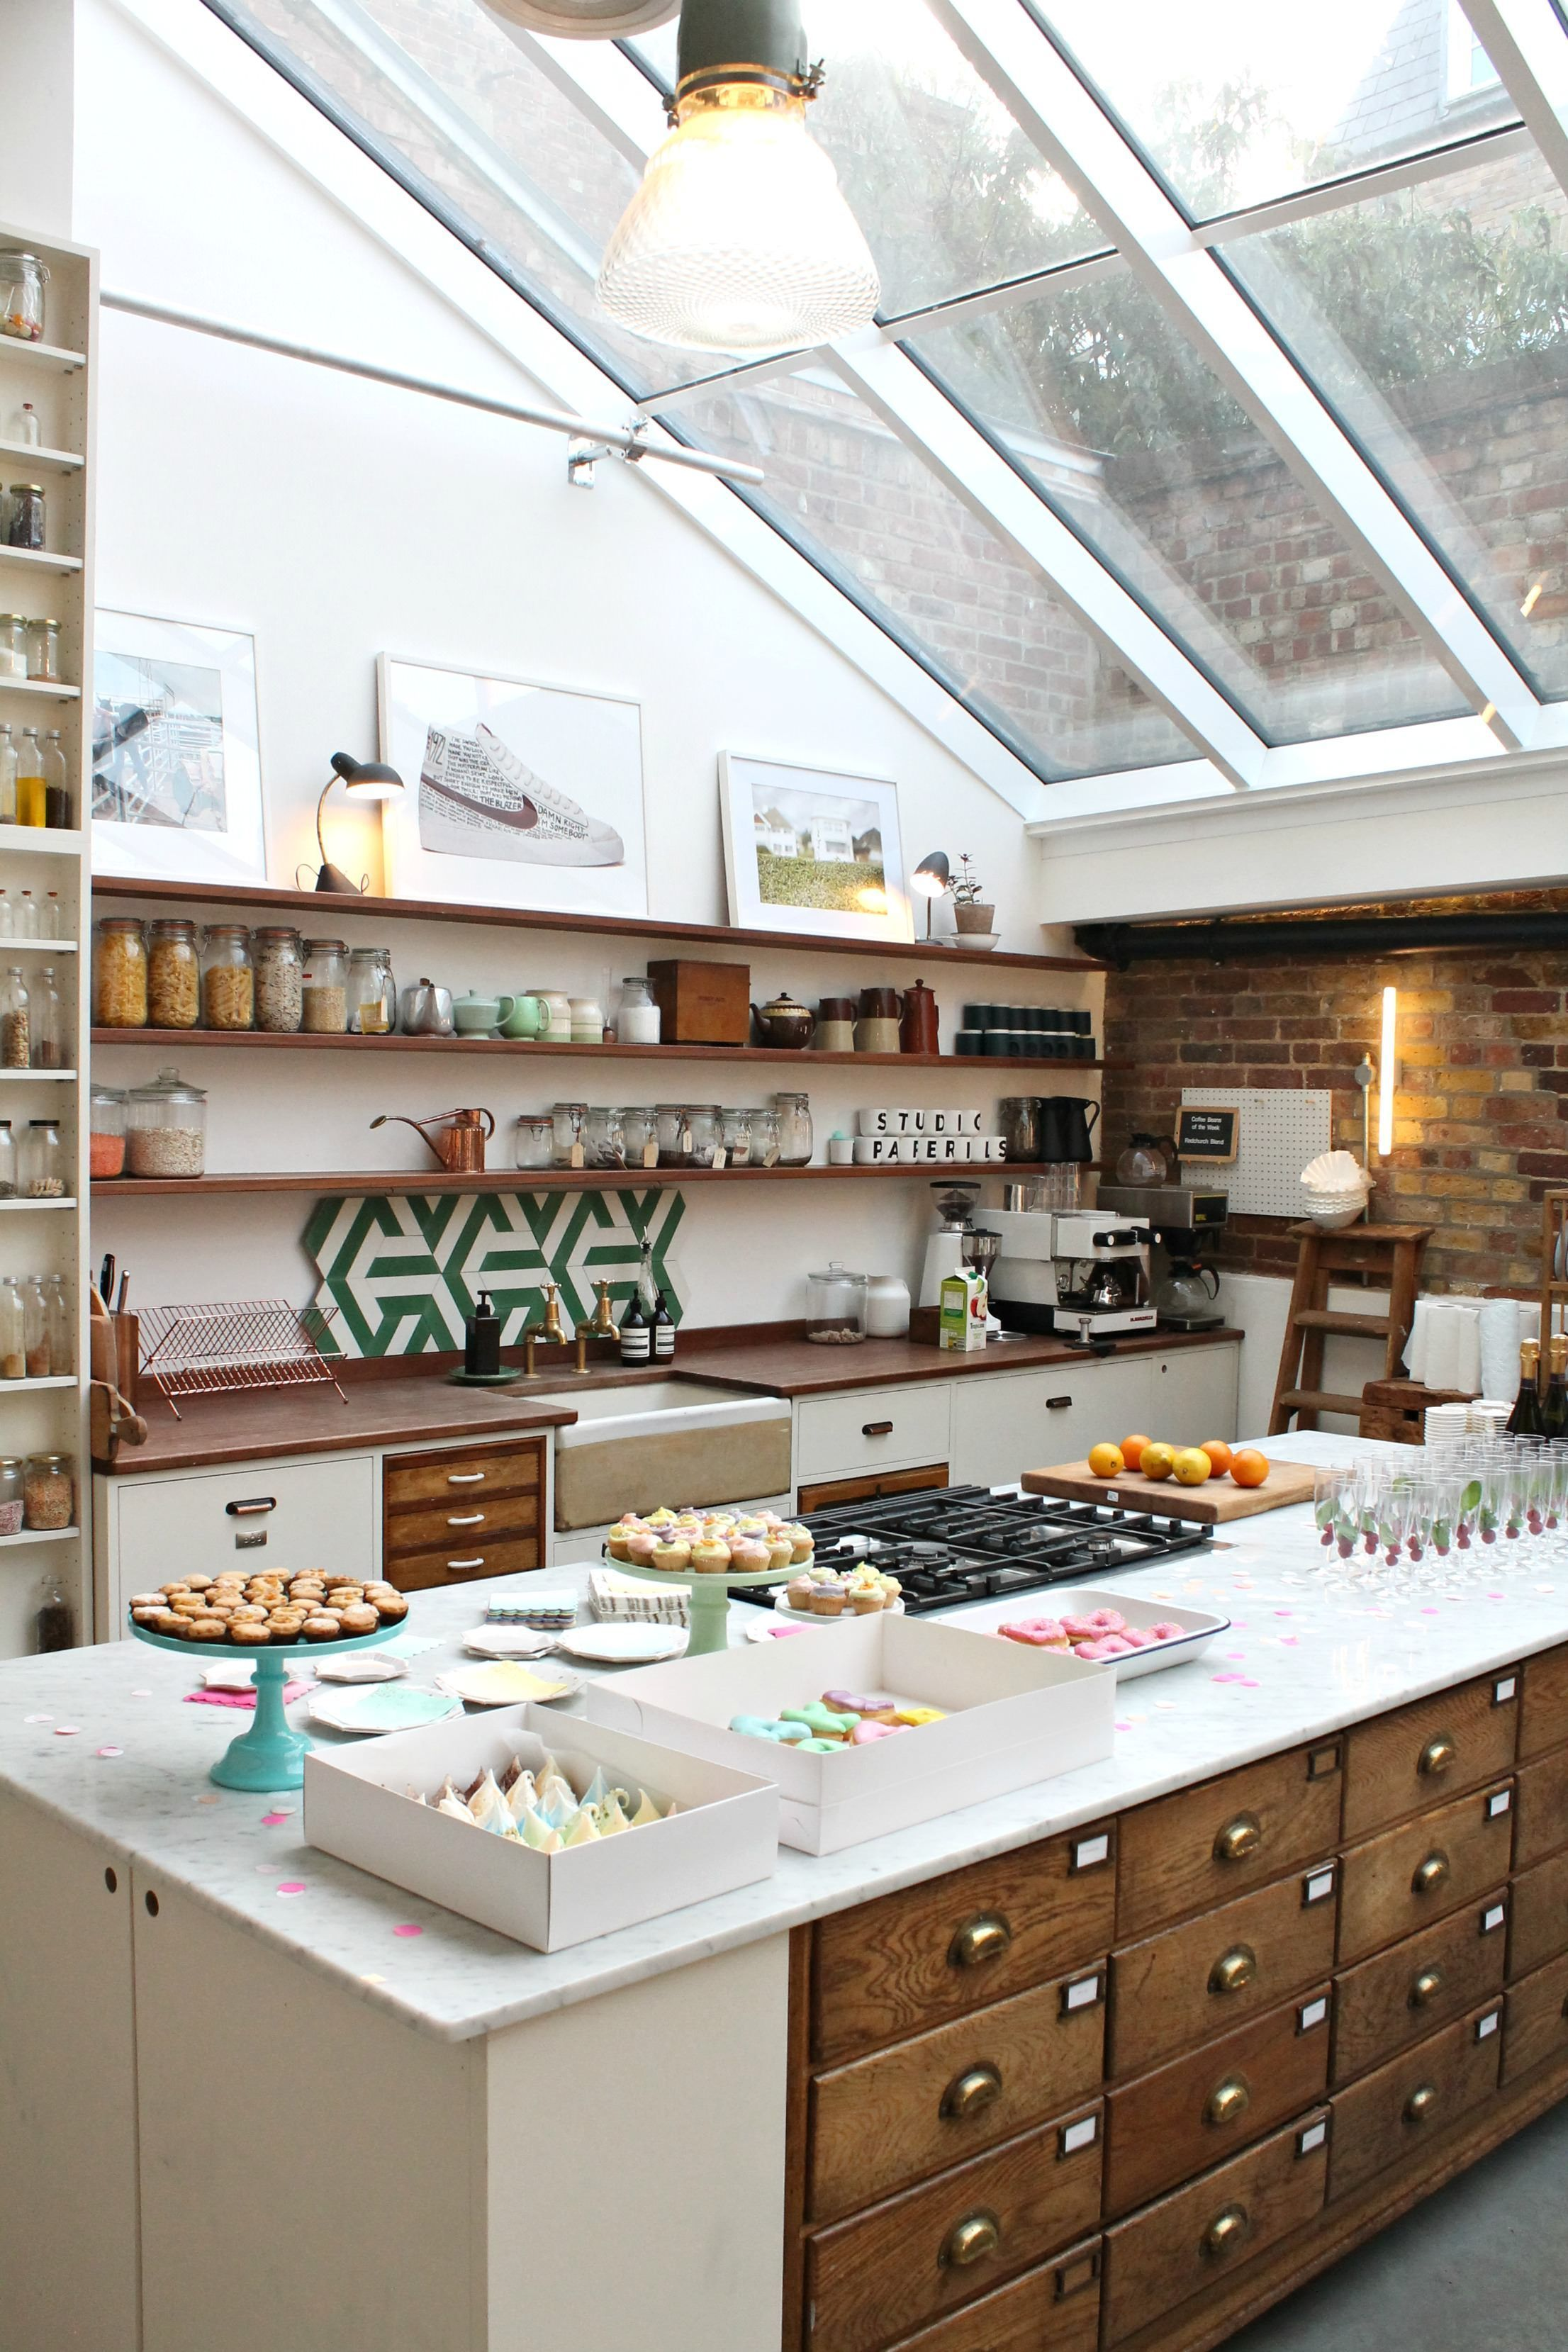 Vintage style kitchen where Jamie Oliver cooks – Papermill ...